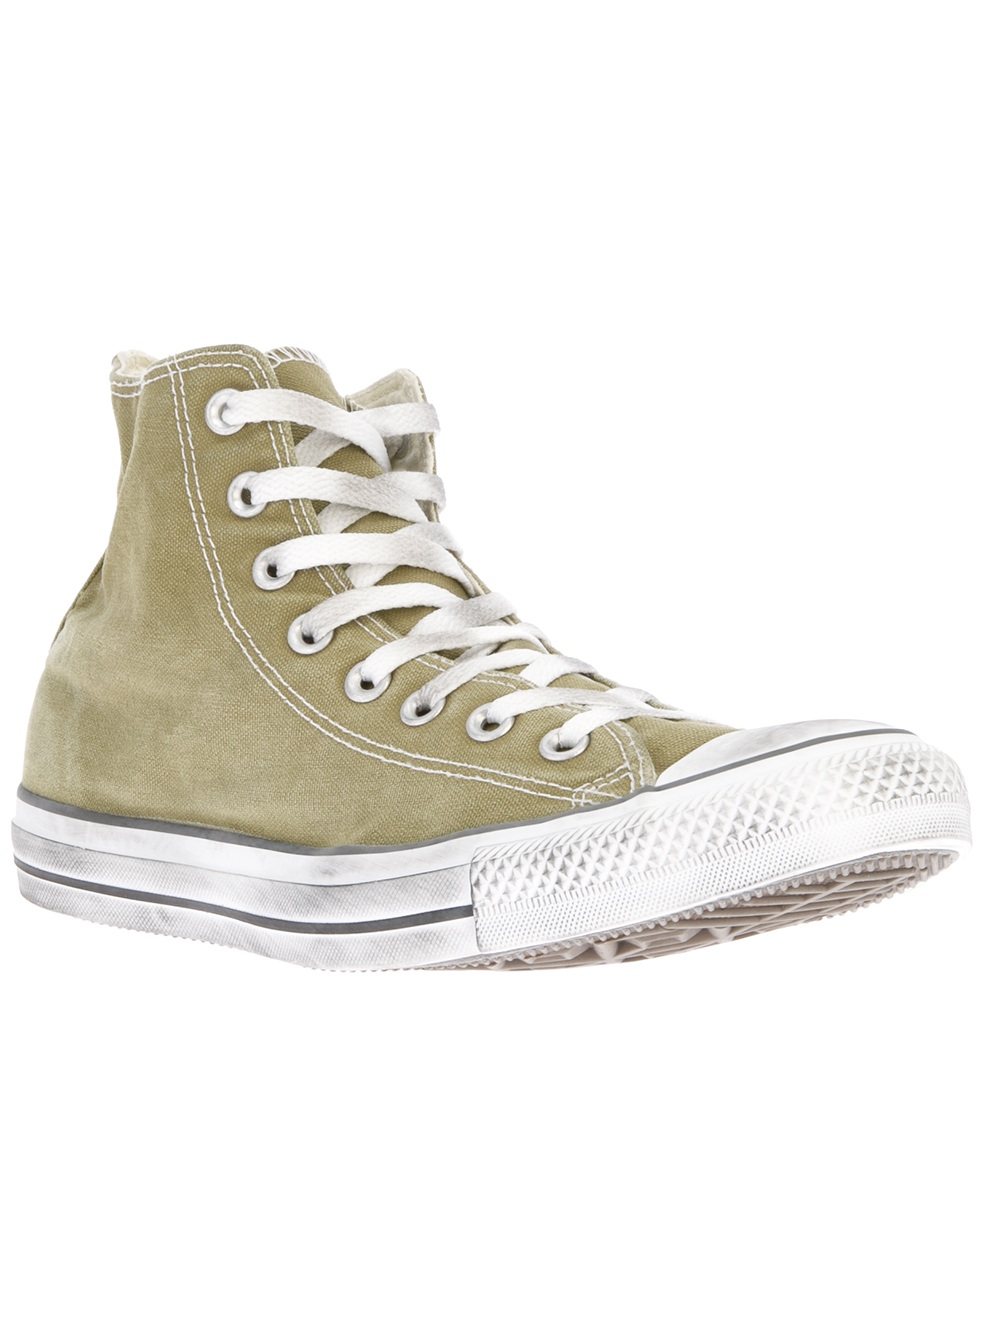 Lyst Converse Hi Top Trainer In Green For Men